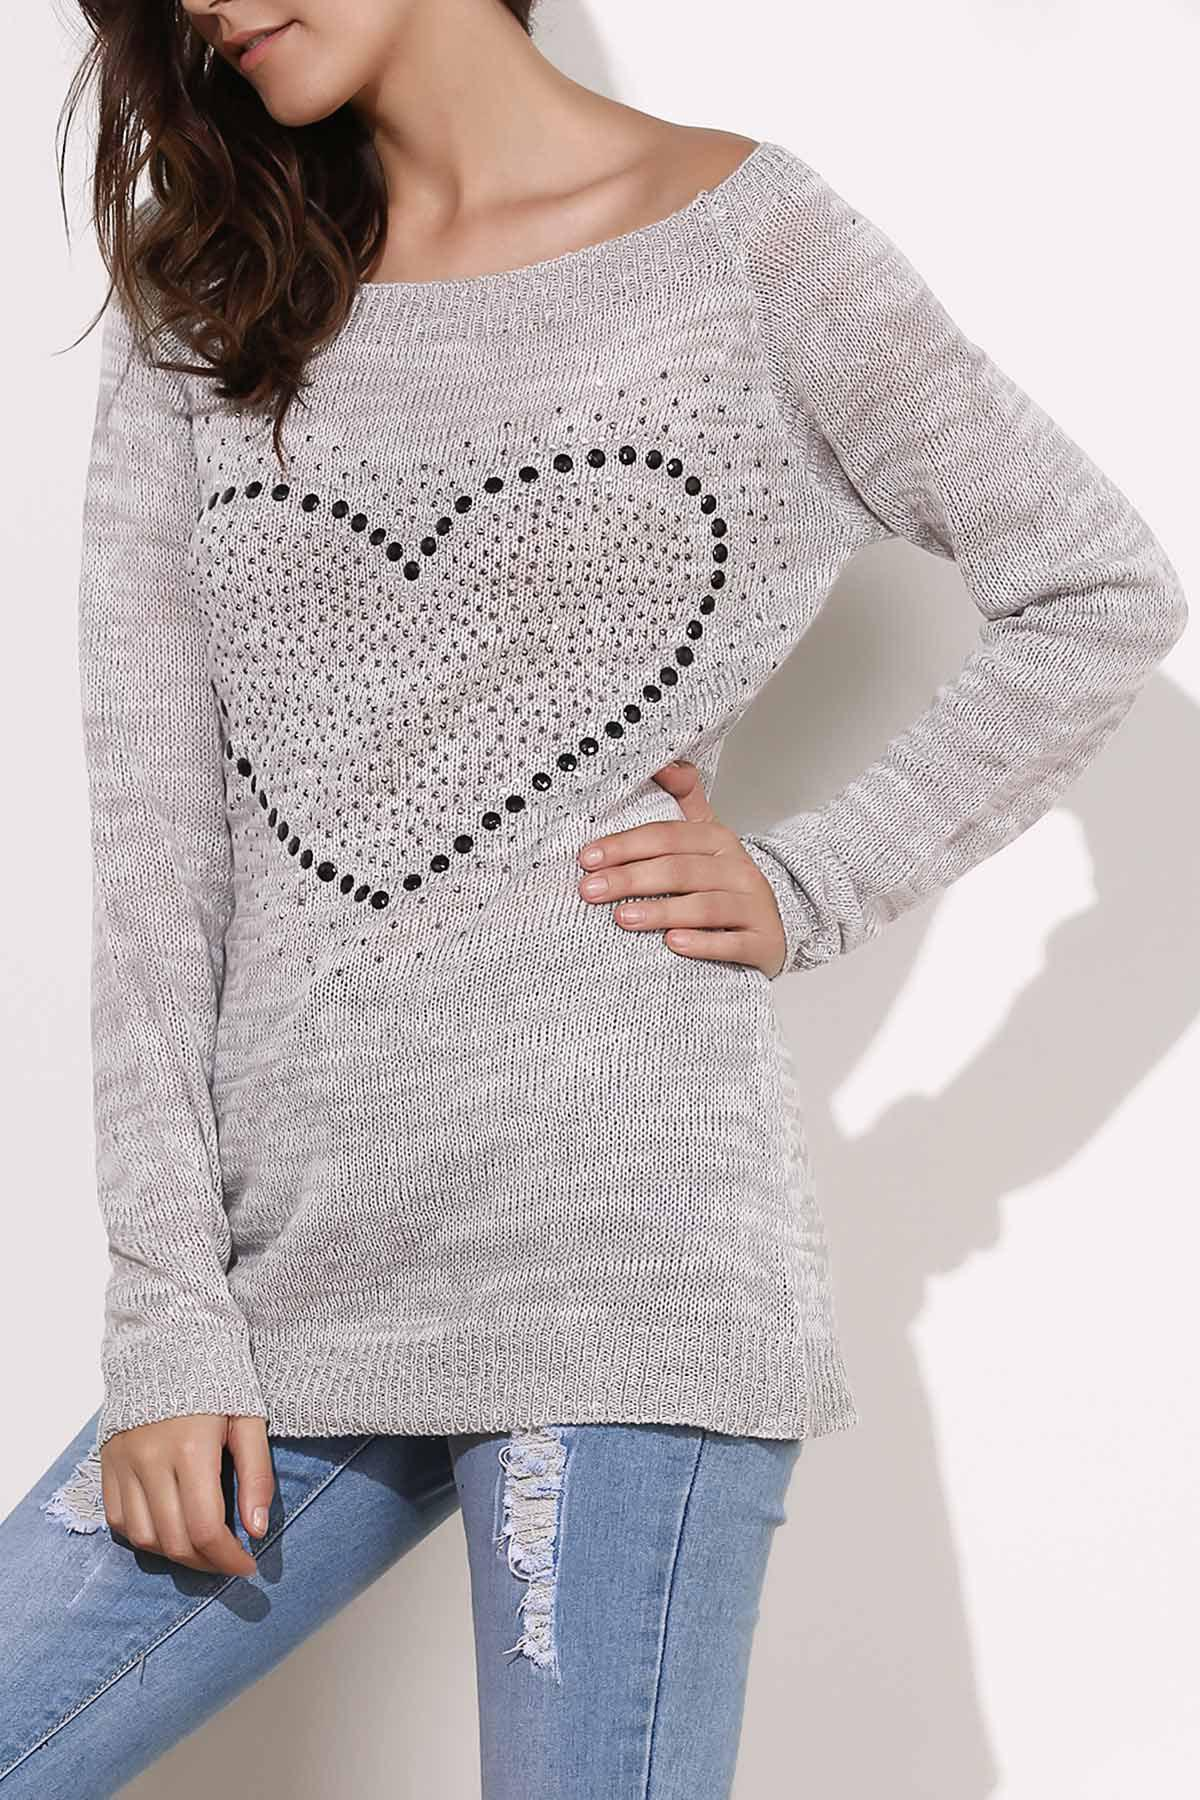 Boat Neck Embellished Sweater - LIGHT GRAY S